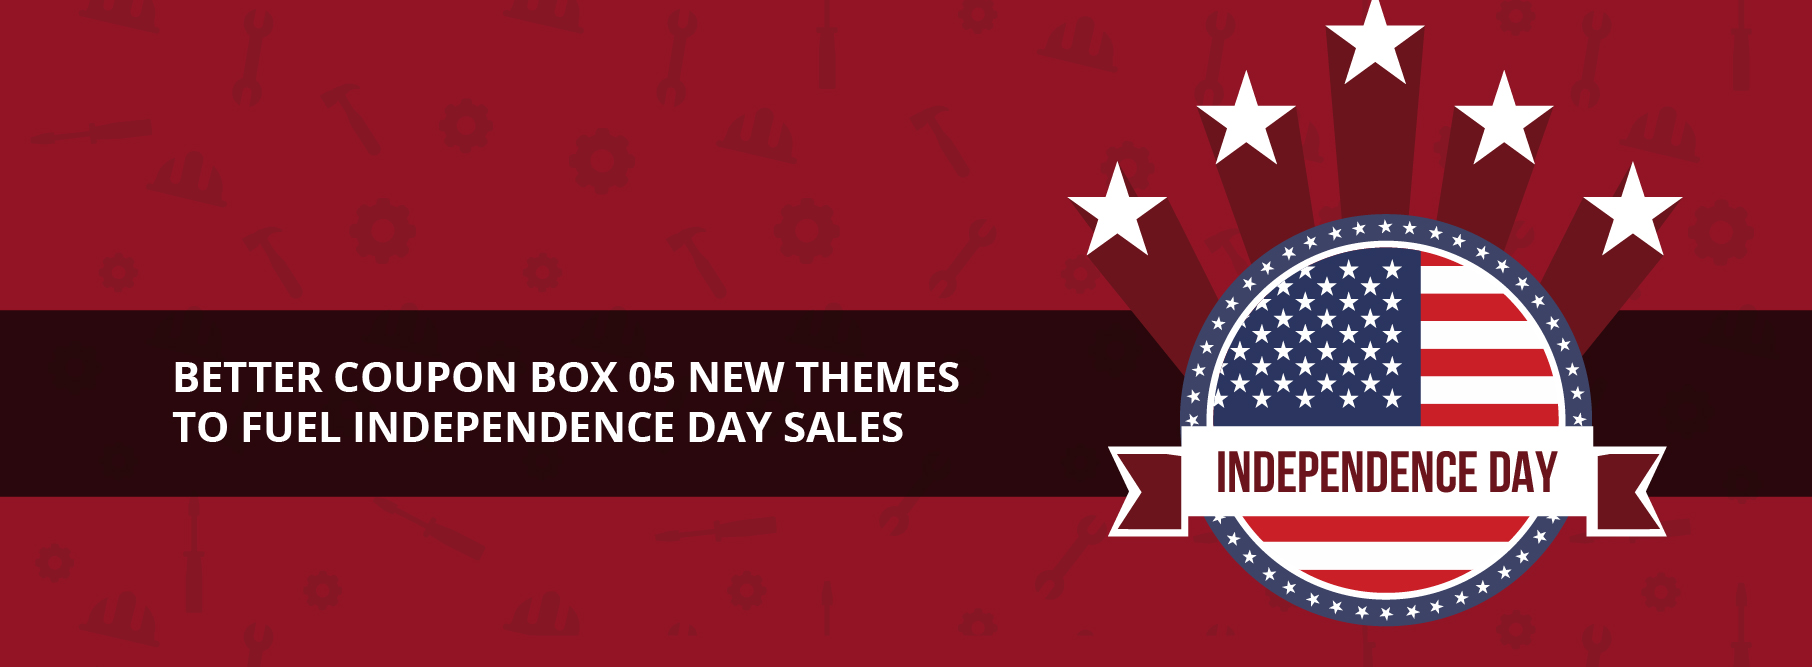 New themes for Independence Day sales-01